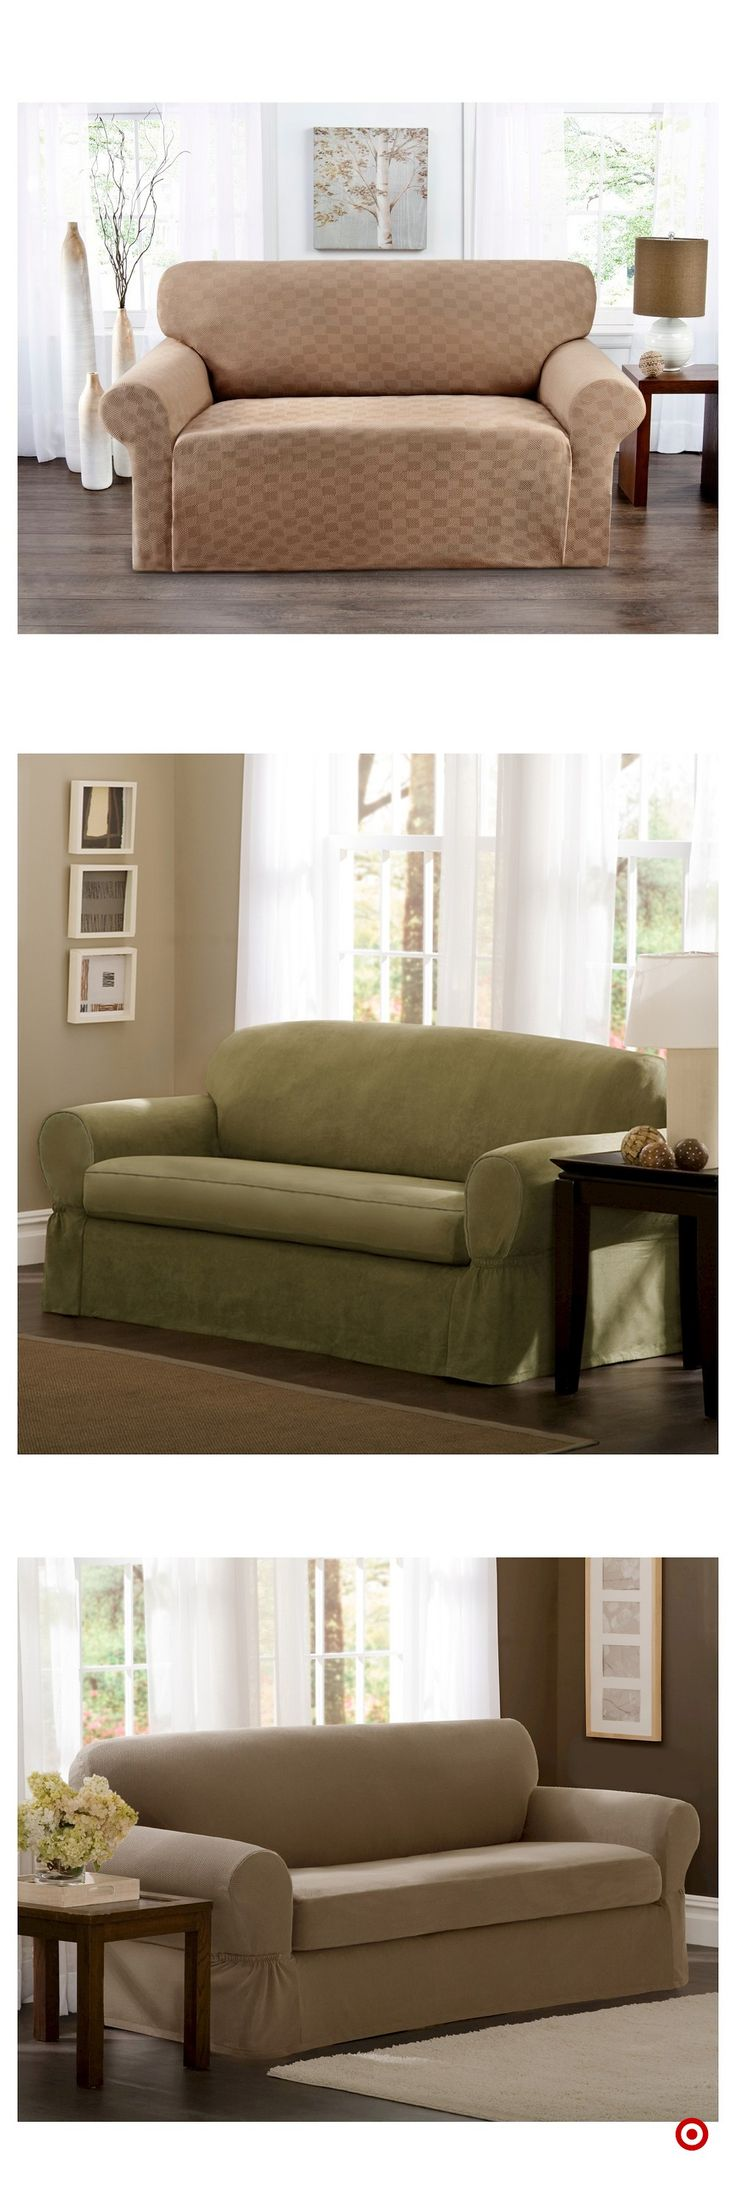 shop target for loveseat slipcover you will love at great low prices free shipping on